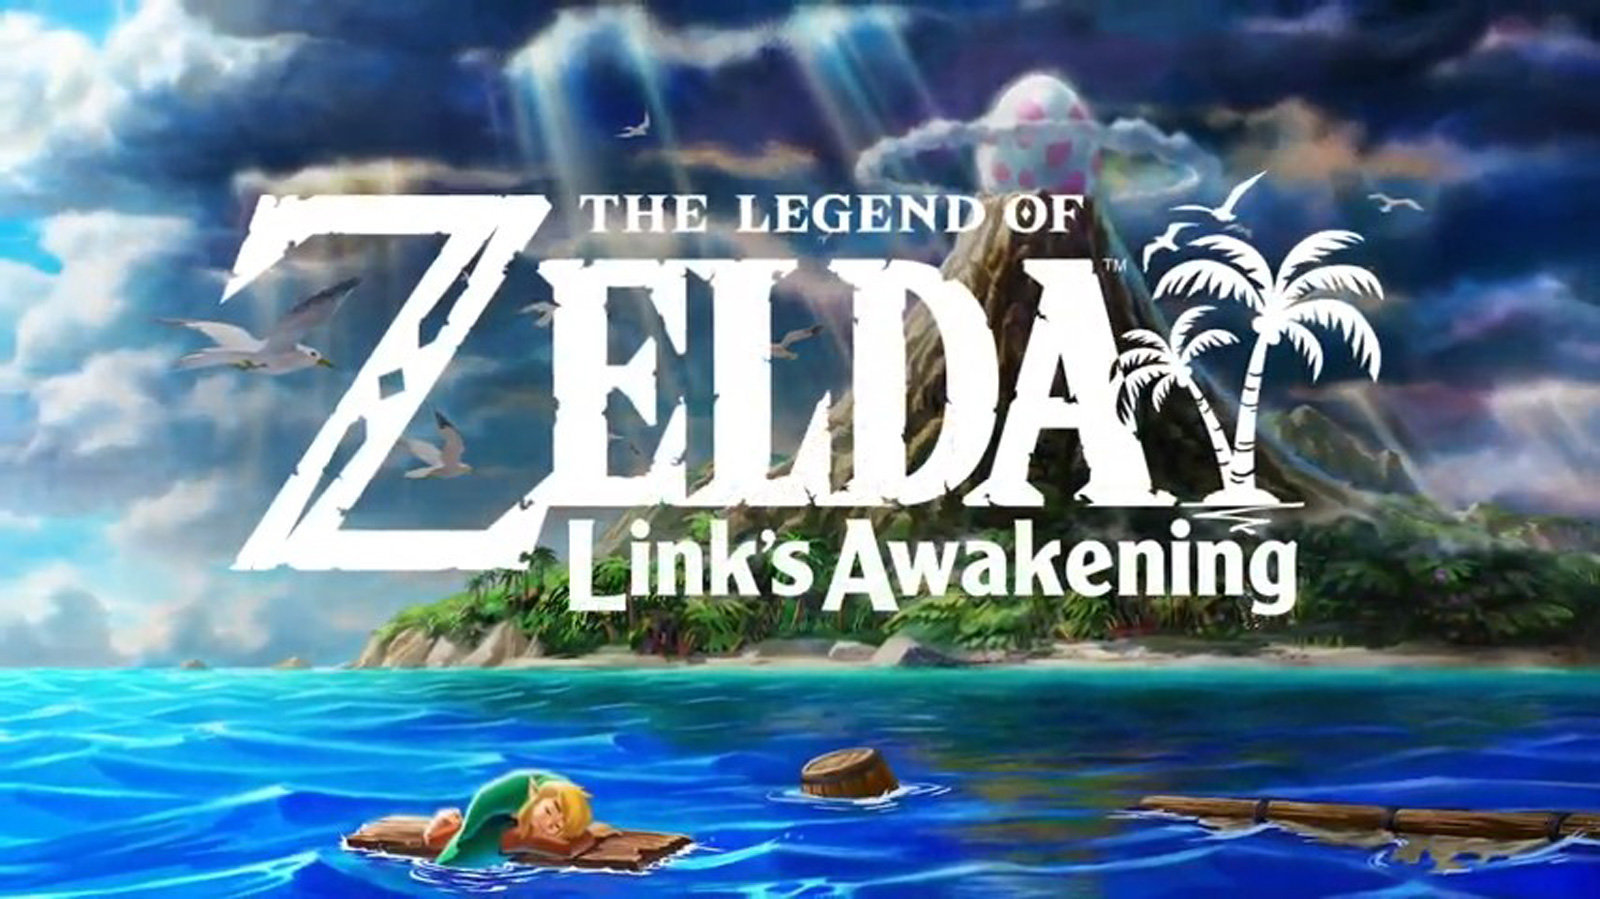 The Legend of Zelda: Link's Awakening [TRAILER]